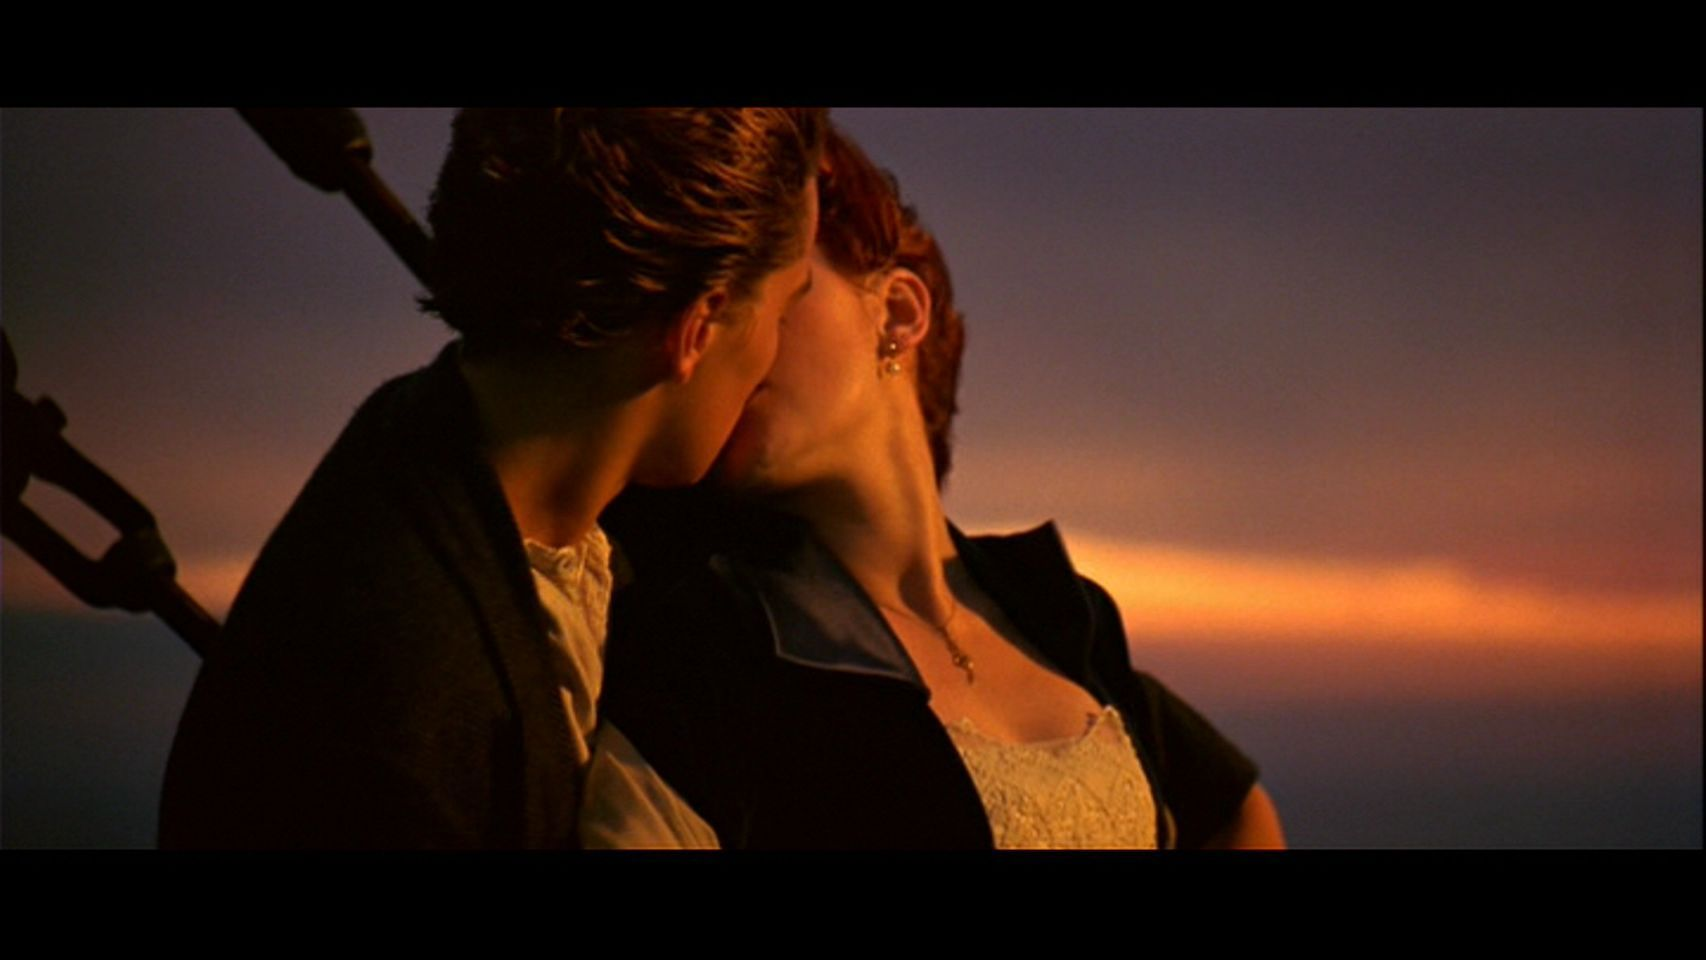 Titanic - Jack & Rose - Jack and Rose Image (22328007 ...